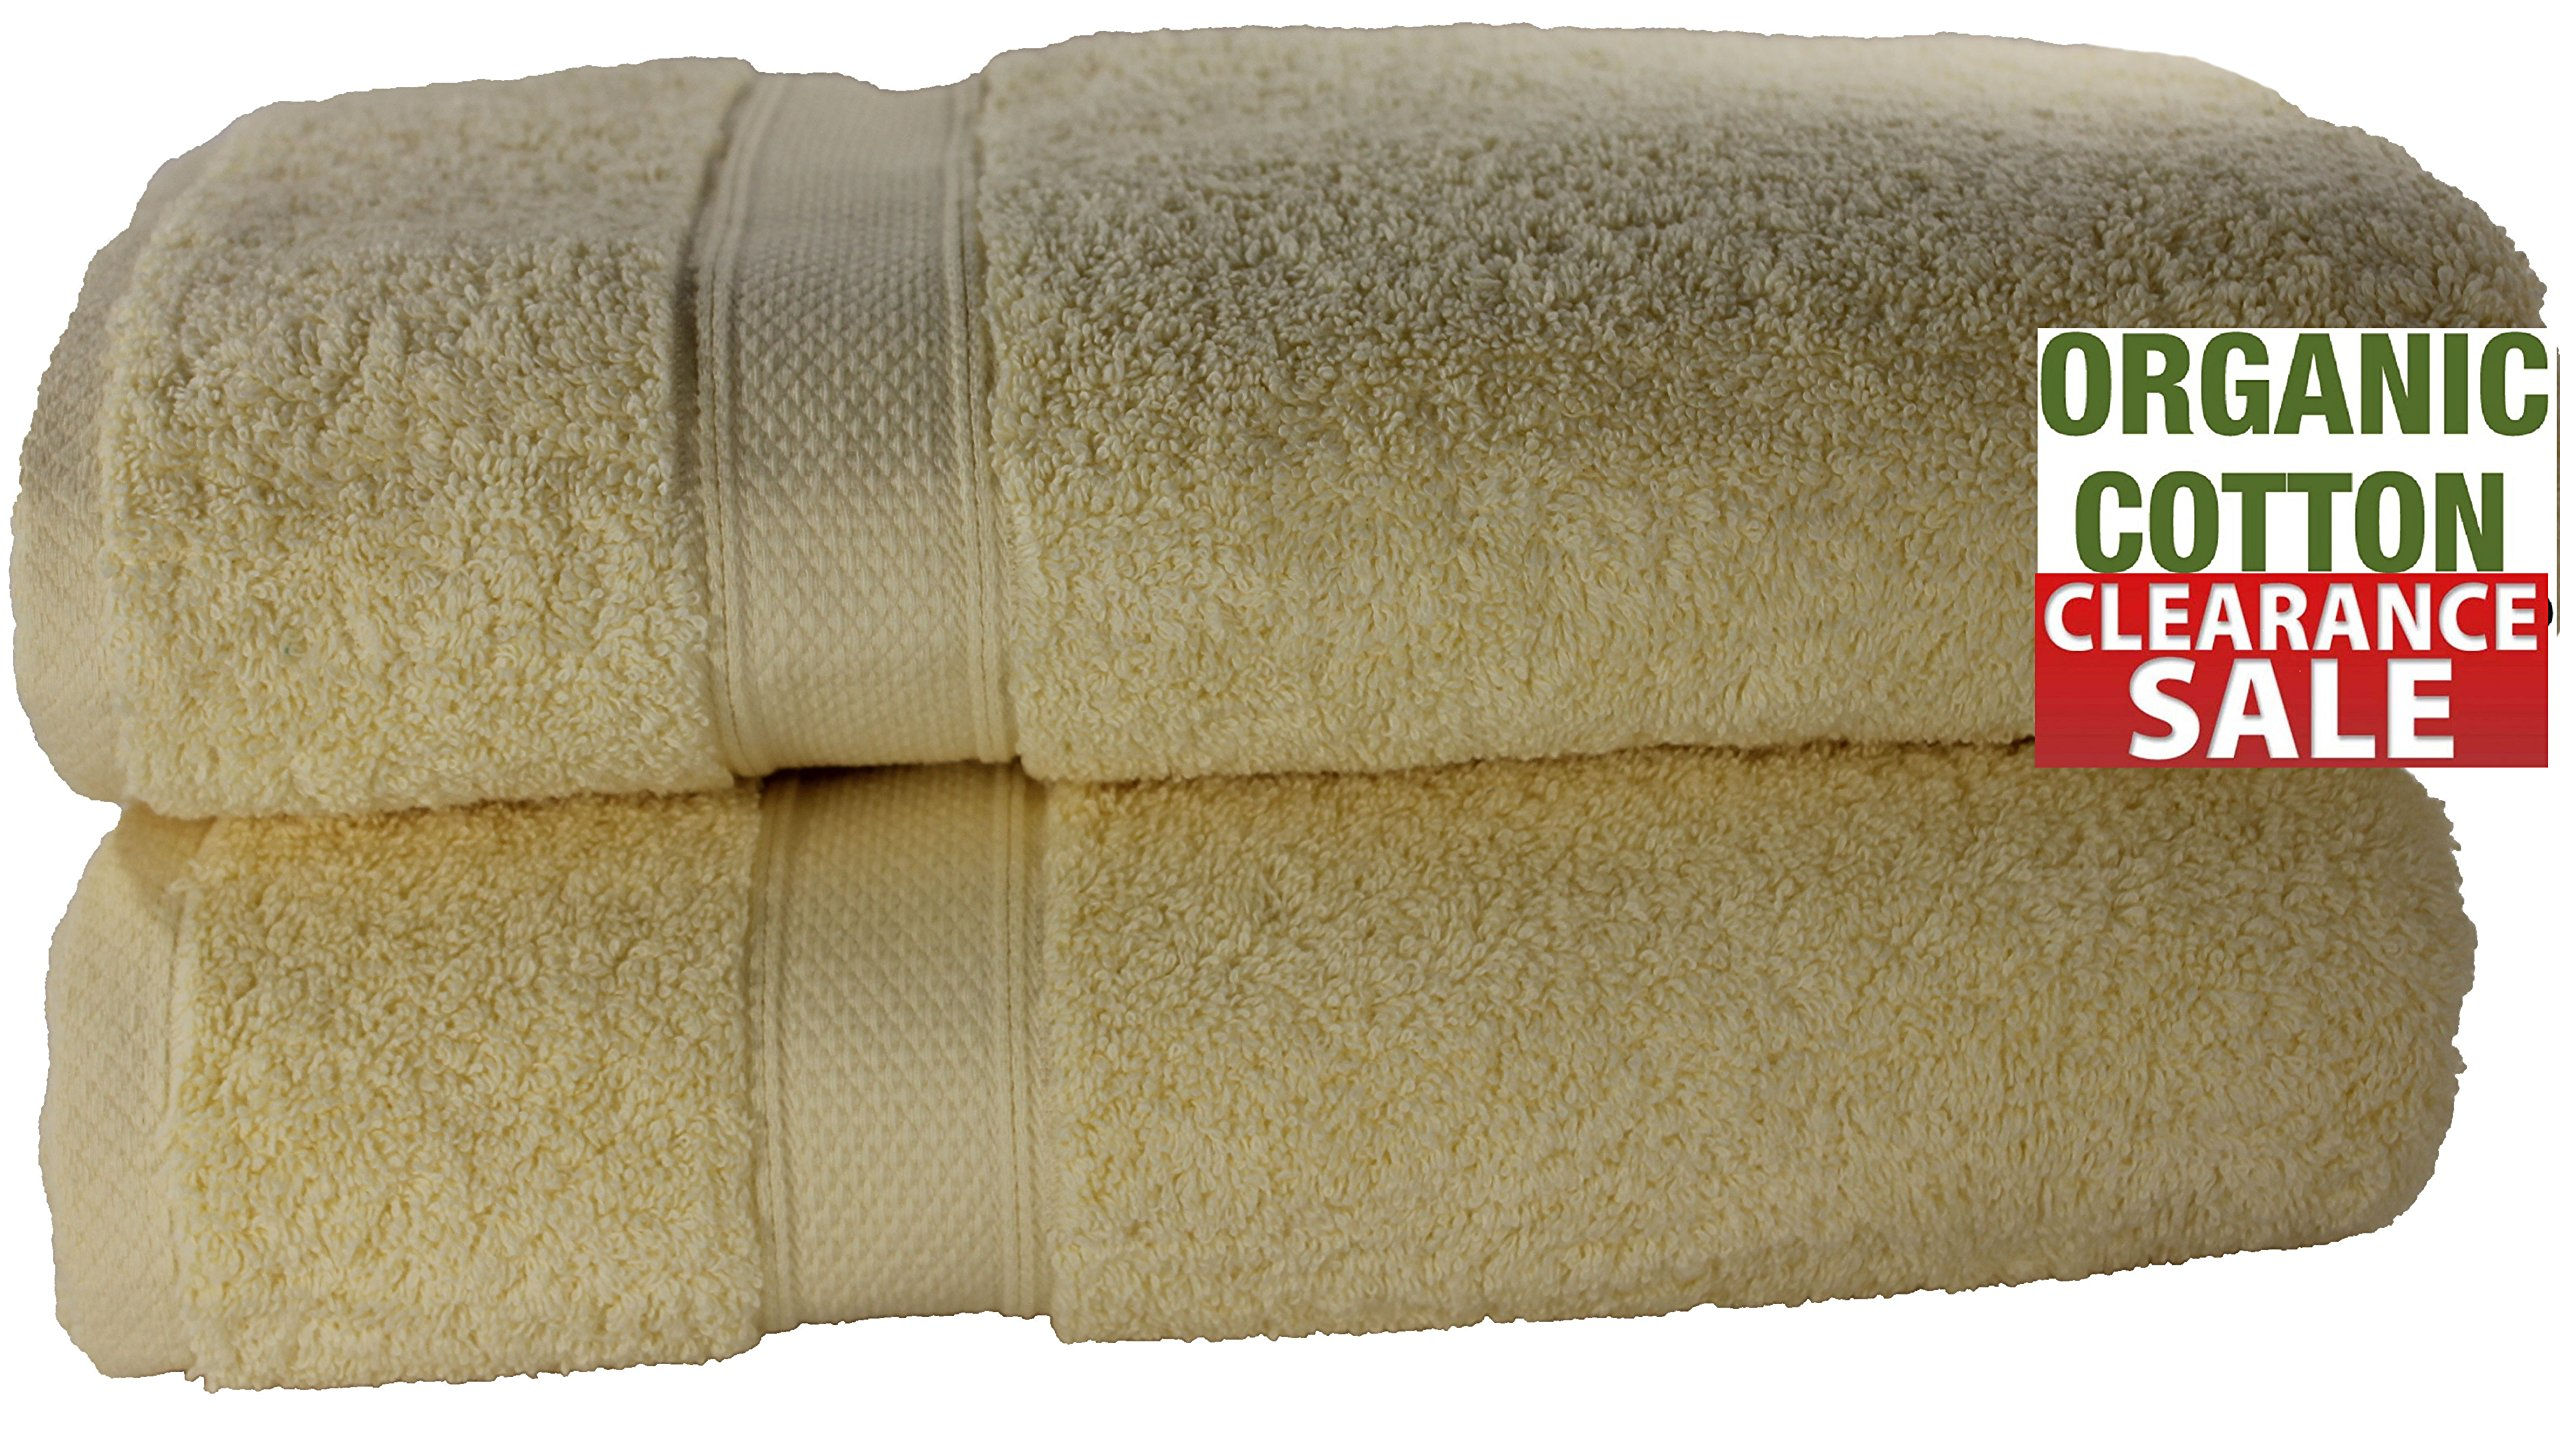 100 % Organic Turkish cotton, Antibacterial Premium Quality, Turkish Towels Super Soft, Plush Highly Absorbency,Everyday Use Quick dry. Long lasting (35 x 70-Inch Bath Sheet- Set of 2, Light Yellow)